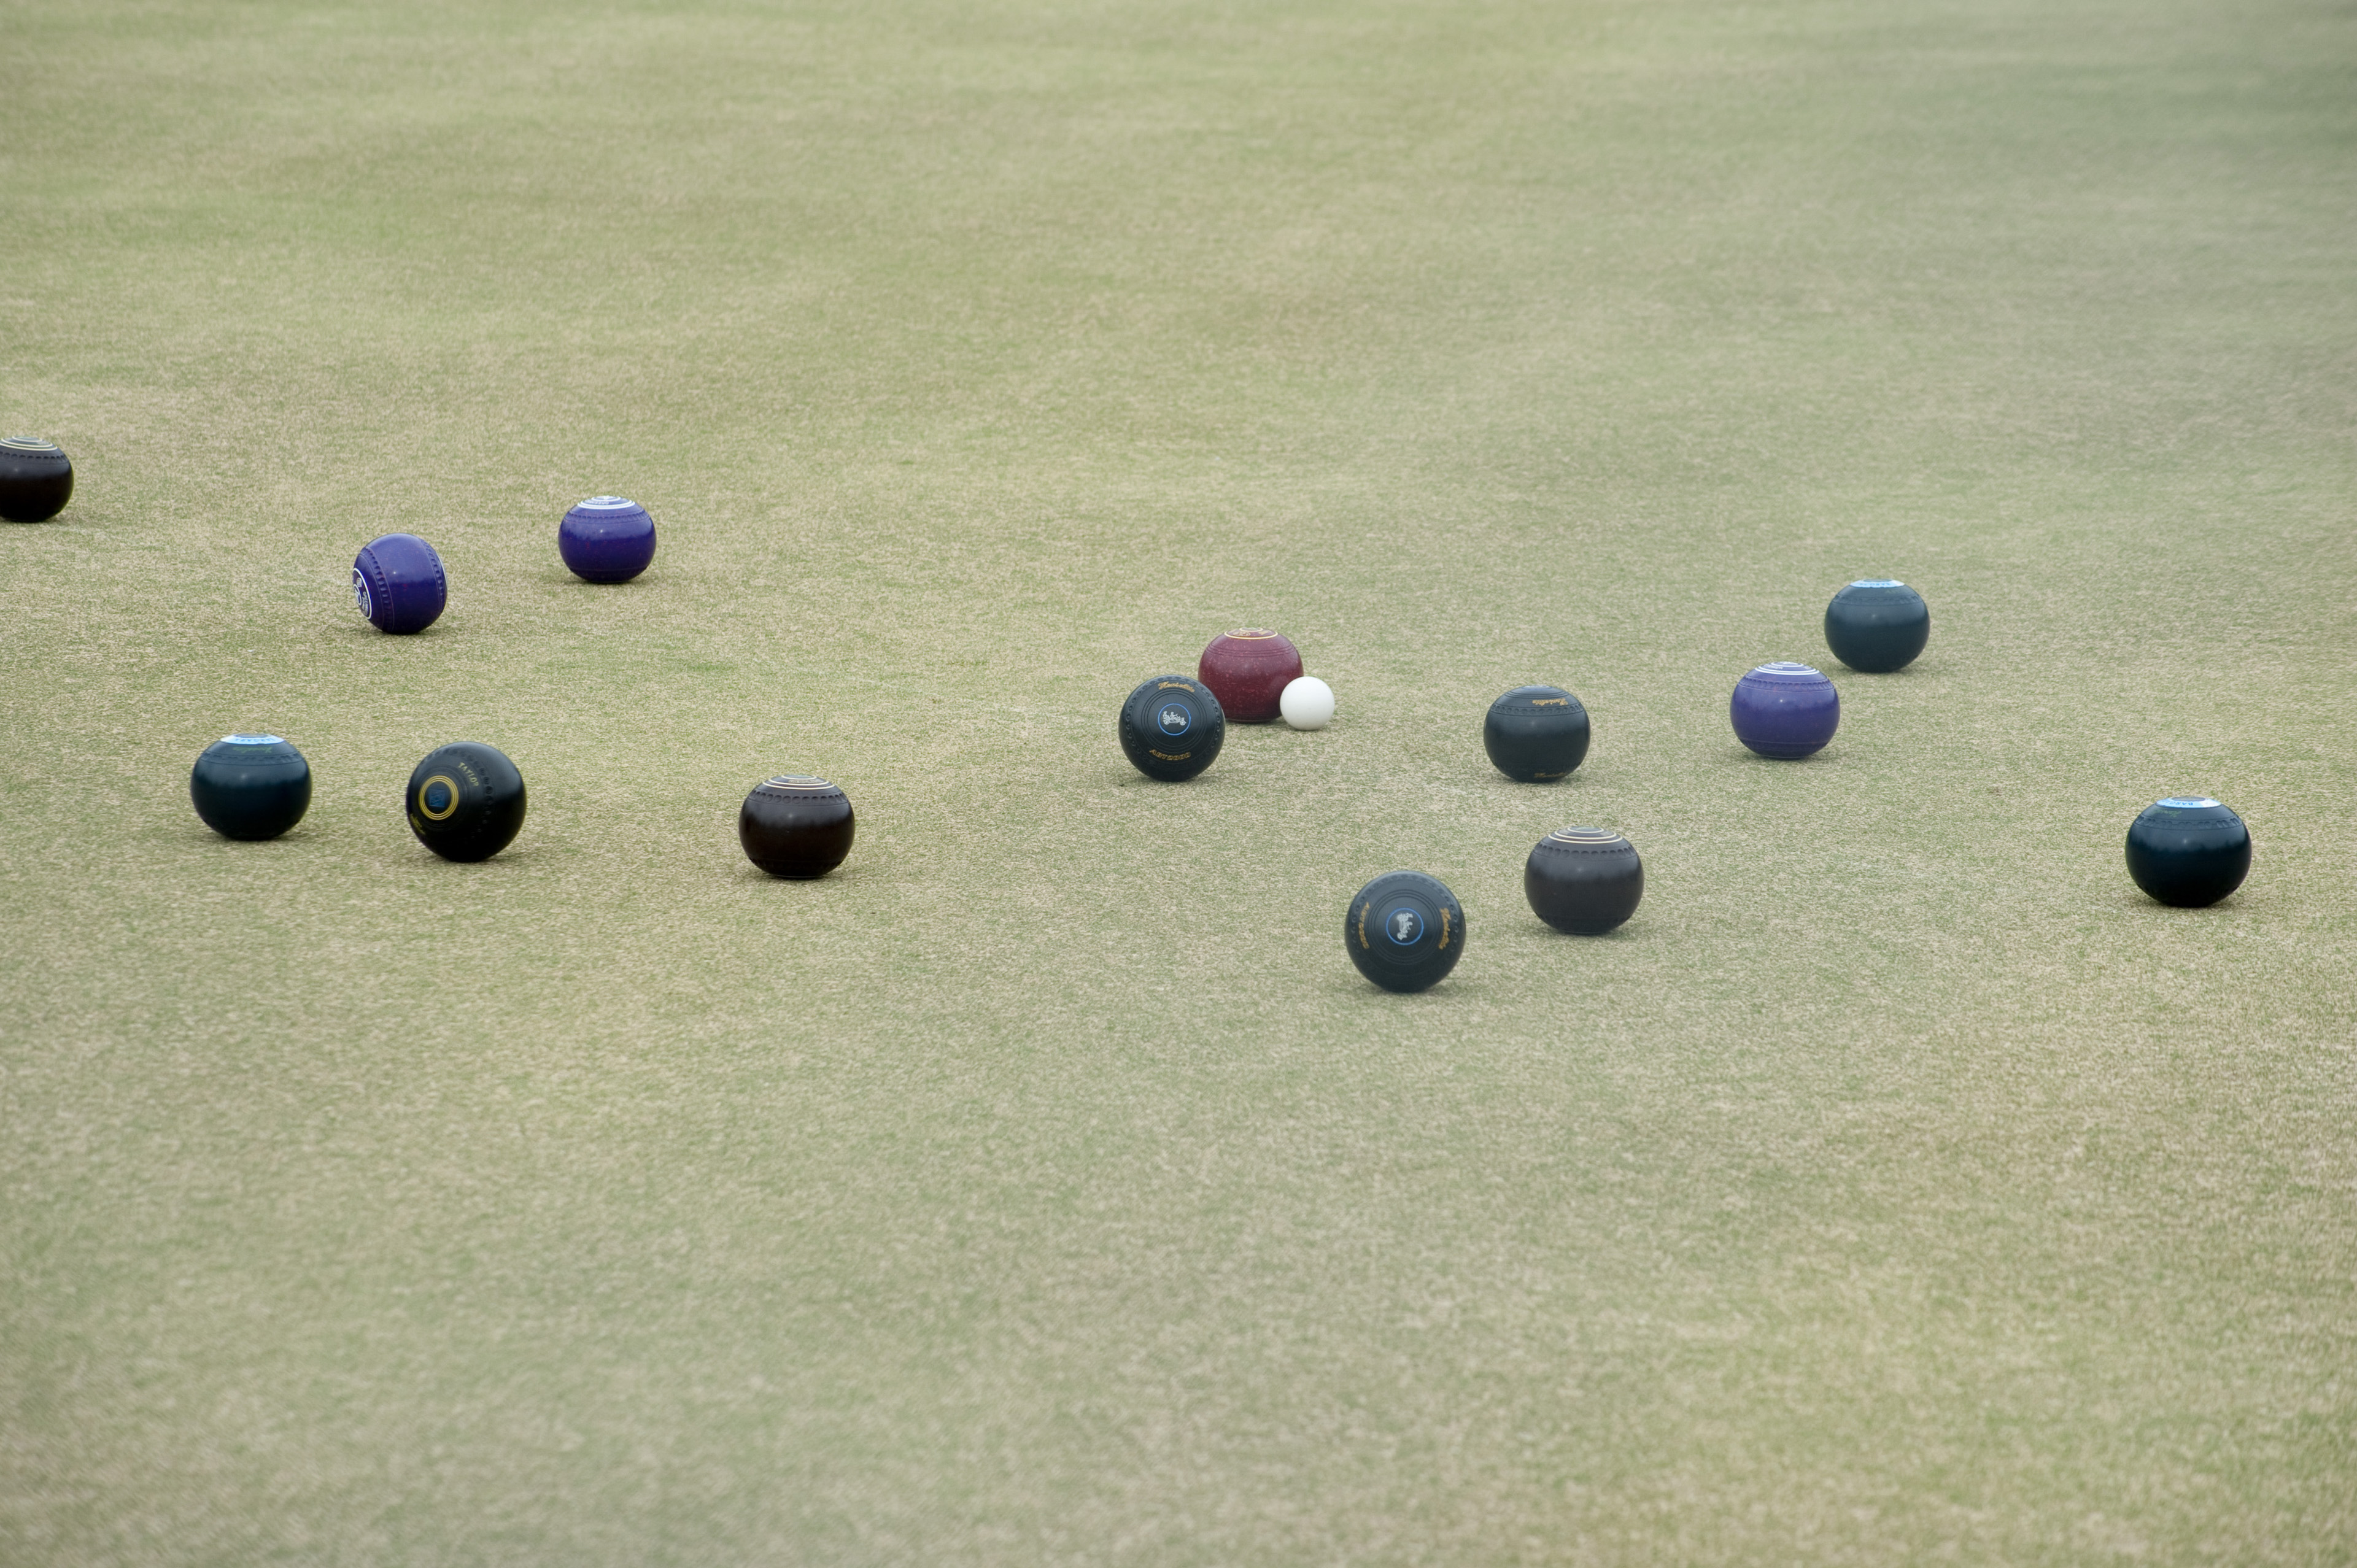 A game of lawn bowls in progress